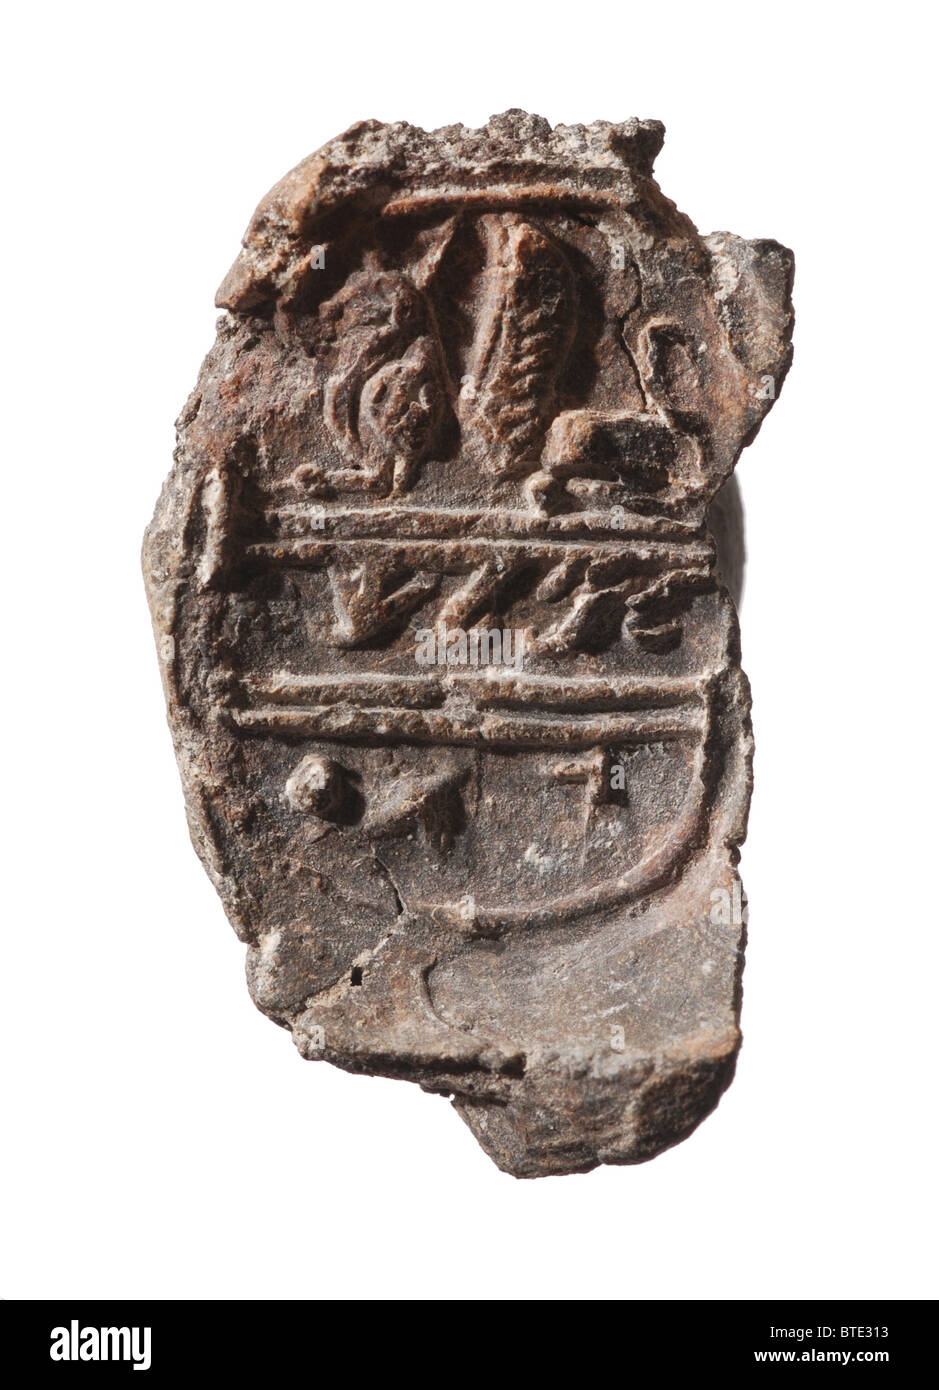 5389. Clay bullah (seal impression) inscribed in ancient Hebrew 'L'Meleh Gat' (belonging) to the king - Stock Image